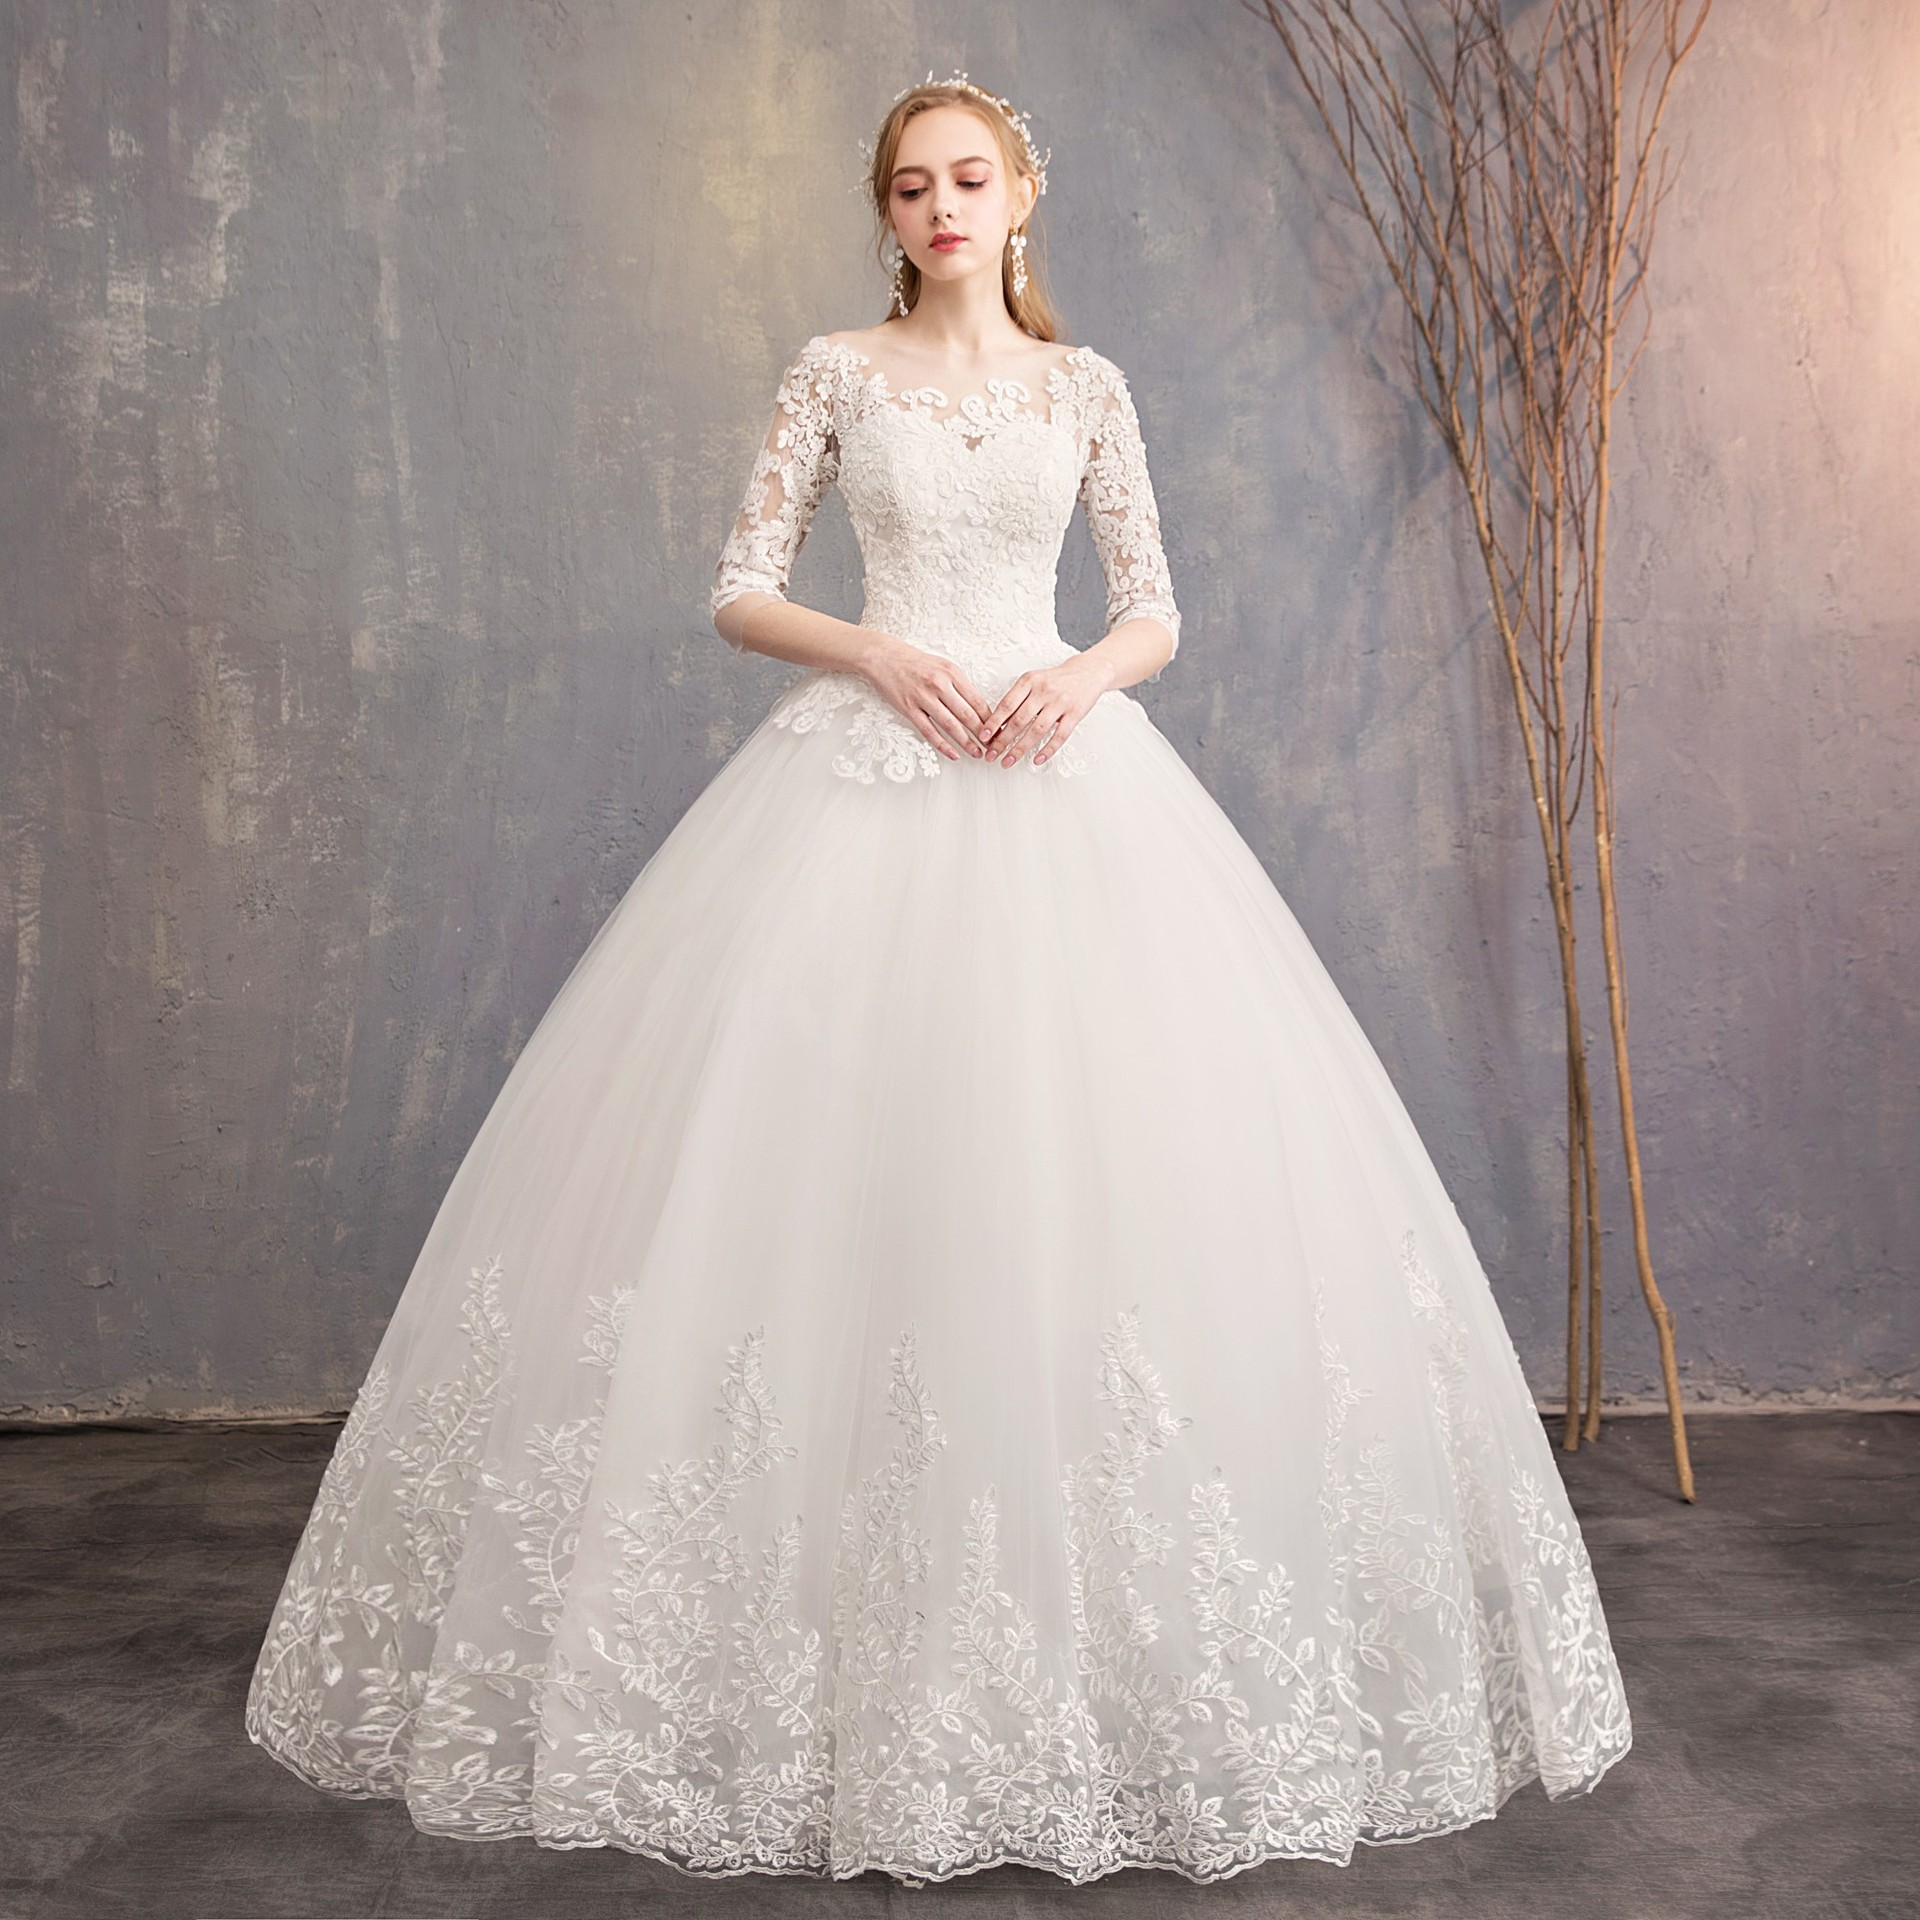 2019 New Arrival Do Dower Half Sleeve Wedding Dress Lace Ball Gown Princess Simple Wedding Gown Bride Dress Vestido De Noiva